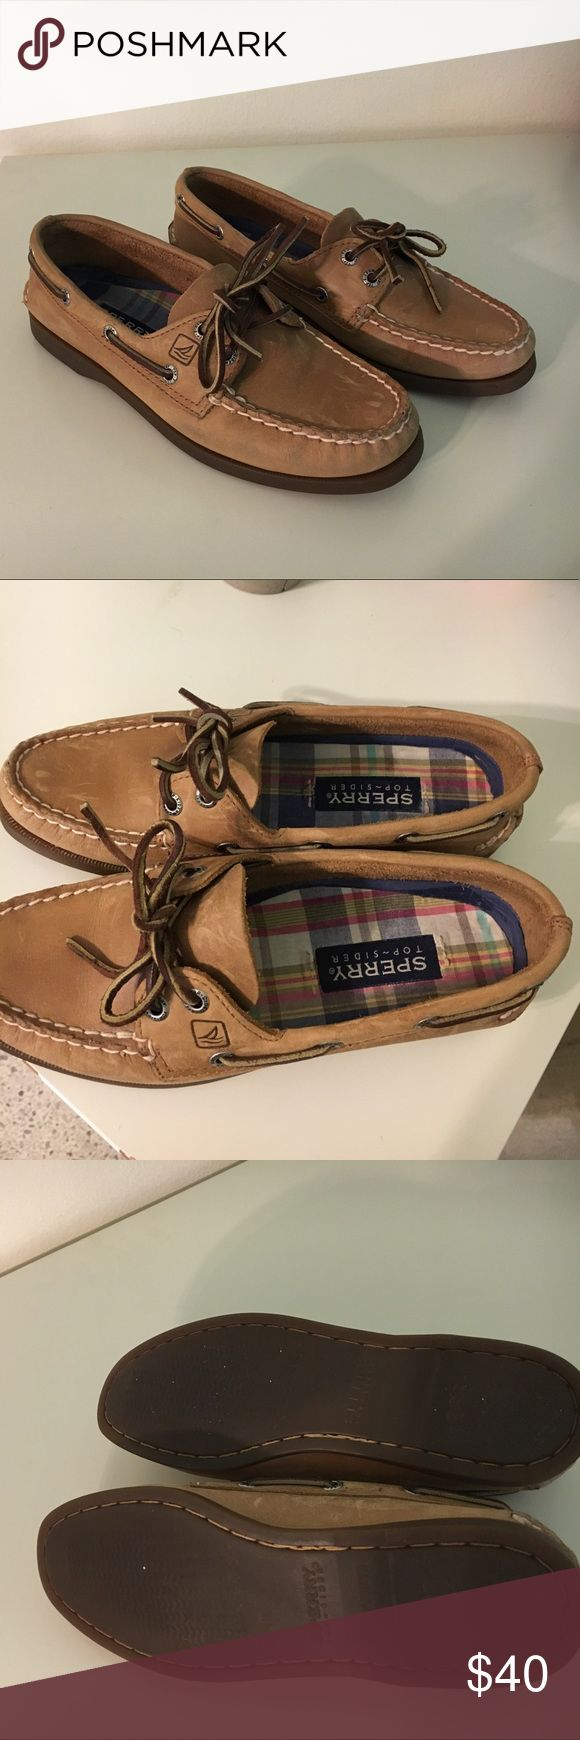 Sperry top sider shoes Sperry top sider boat shoes in very good condition, worn a handful of times only. Some defects at the top from use as pictured. Defects reflected in price. Sperry Top-Sider Shoes